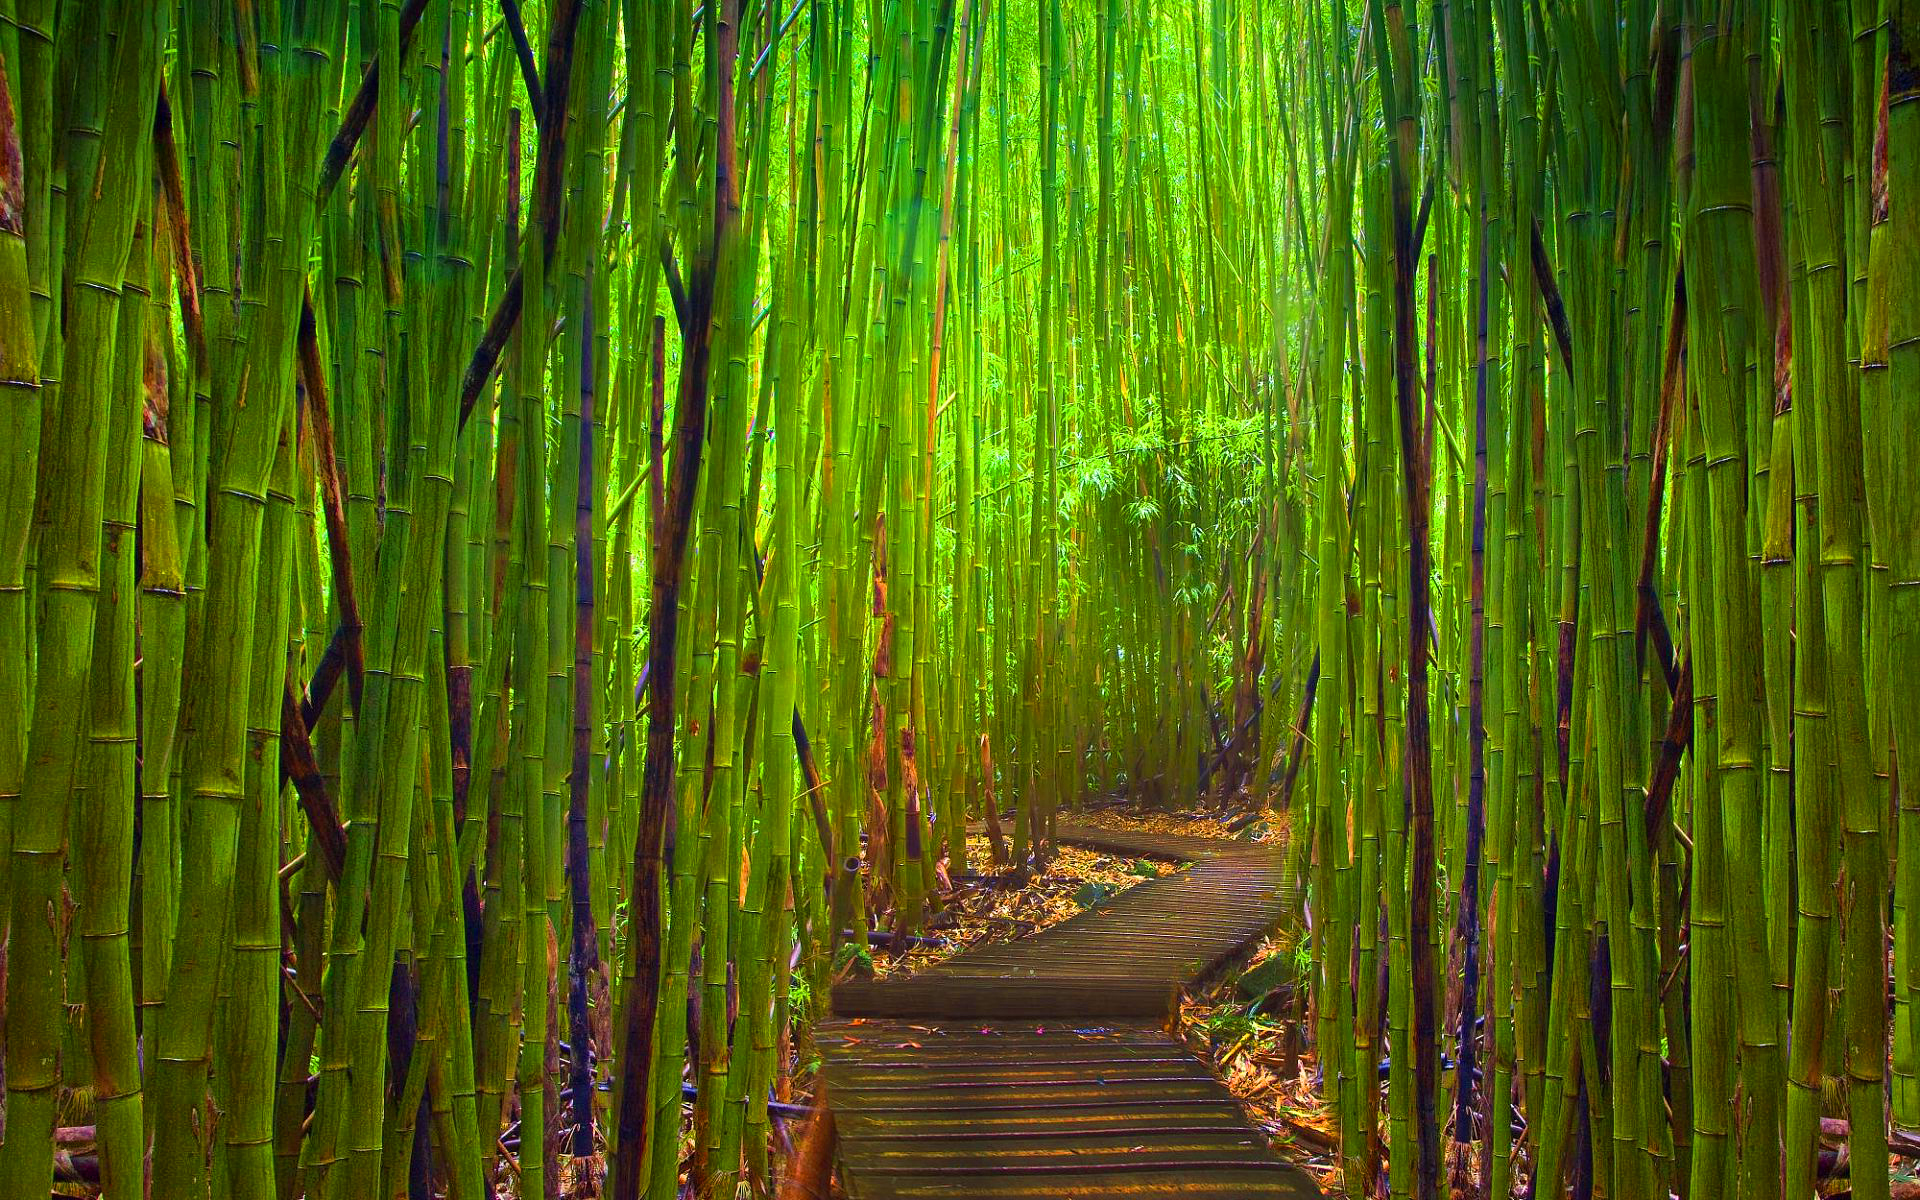 green babmboo forest